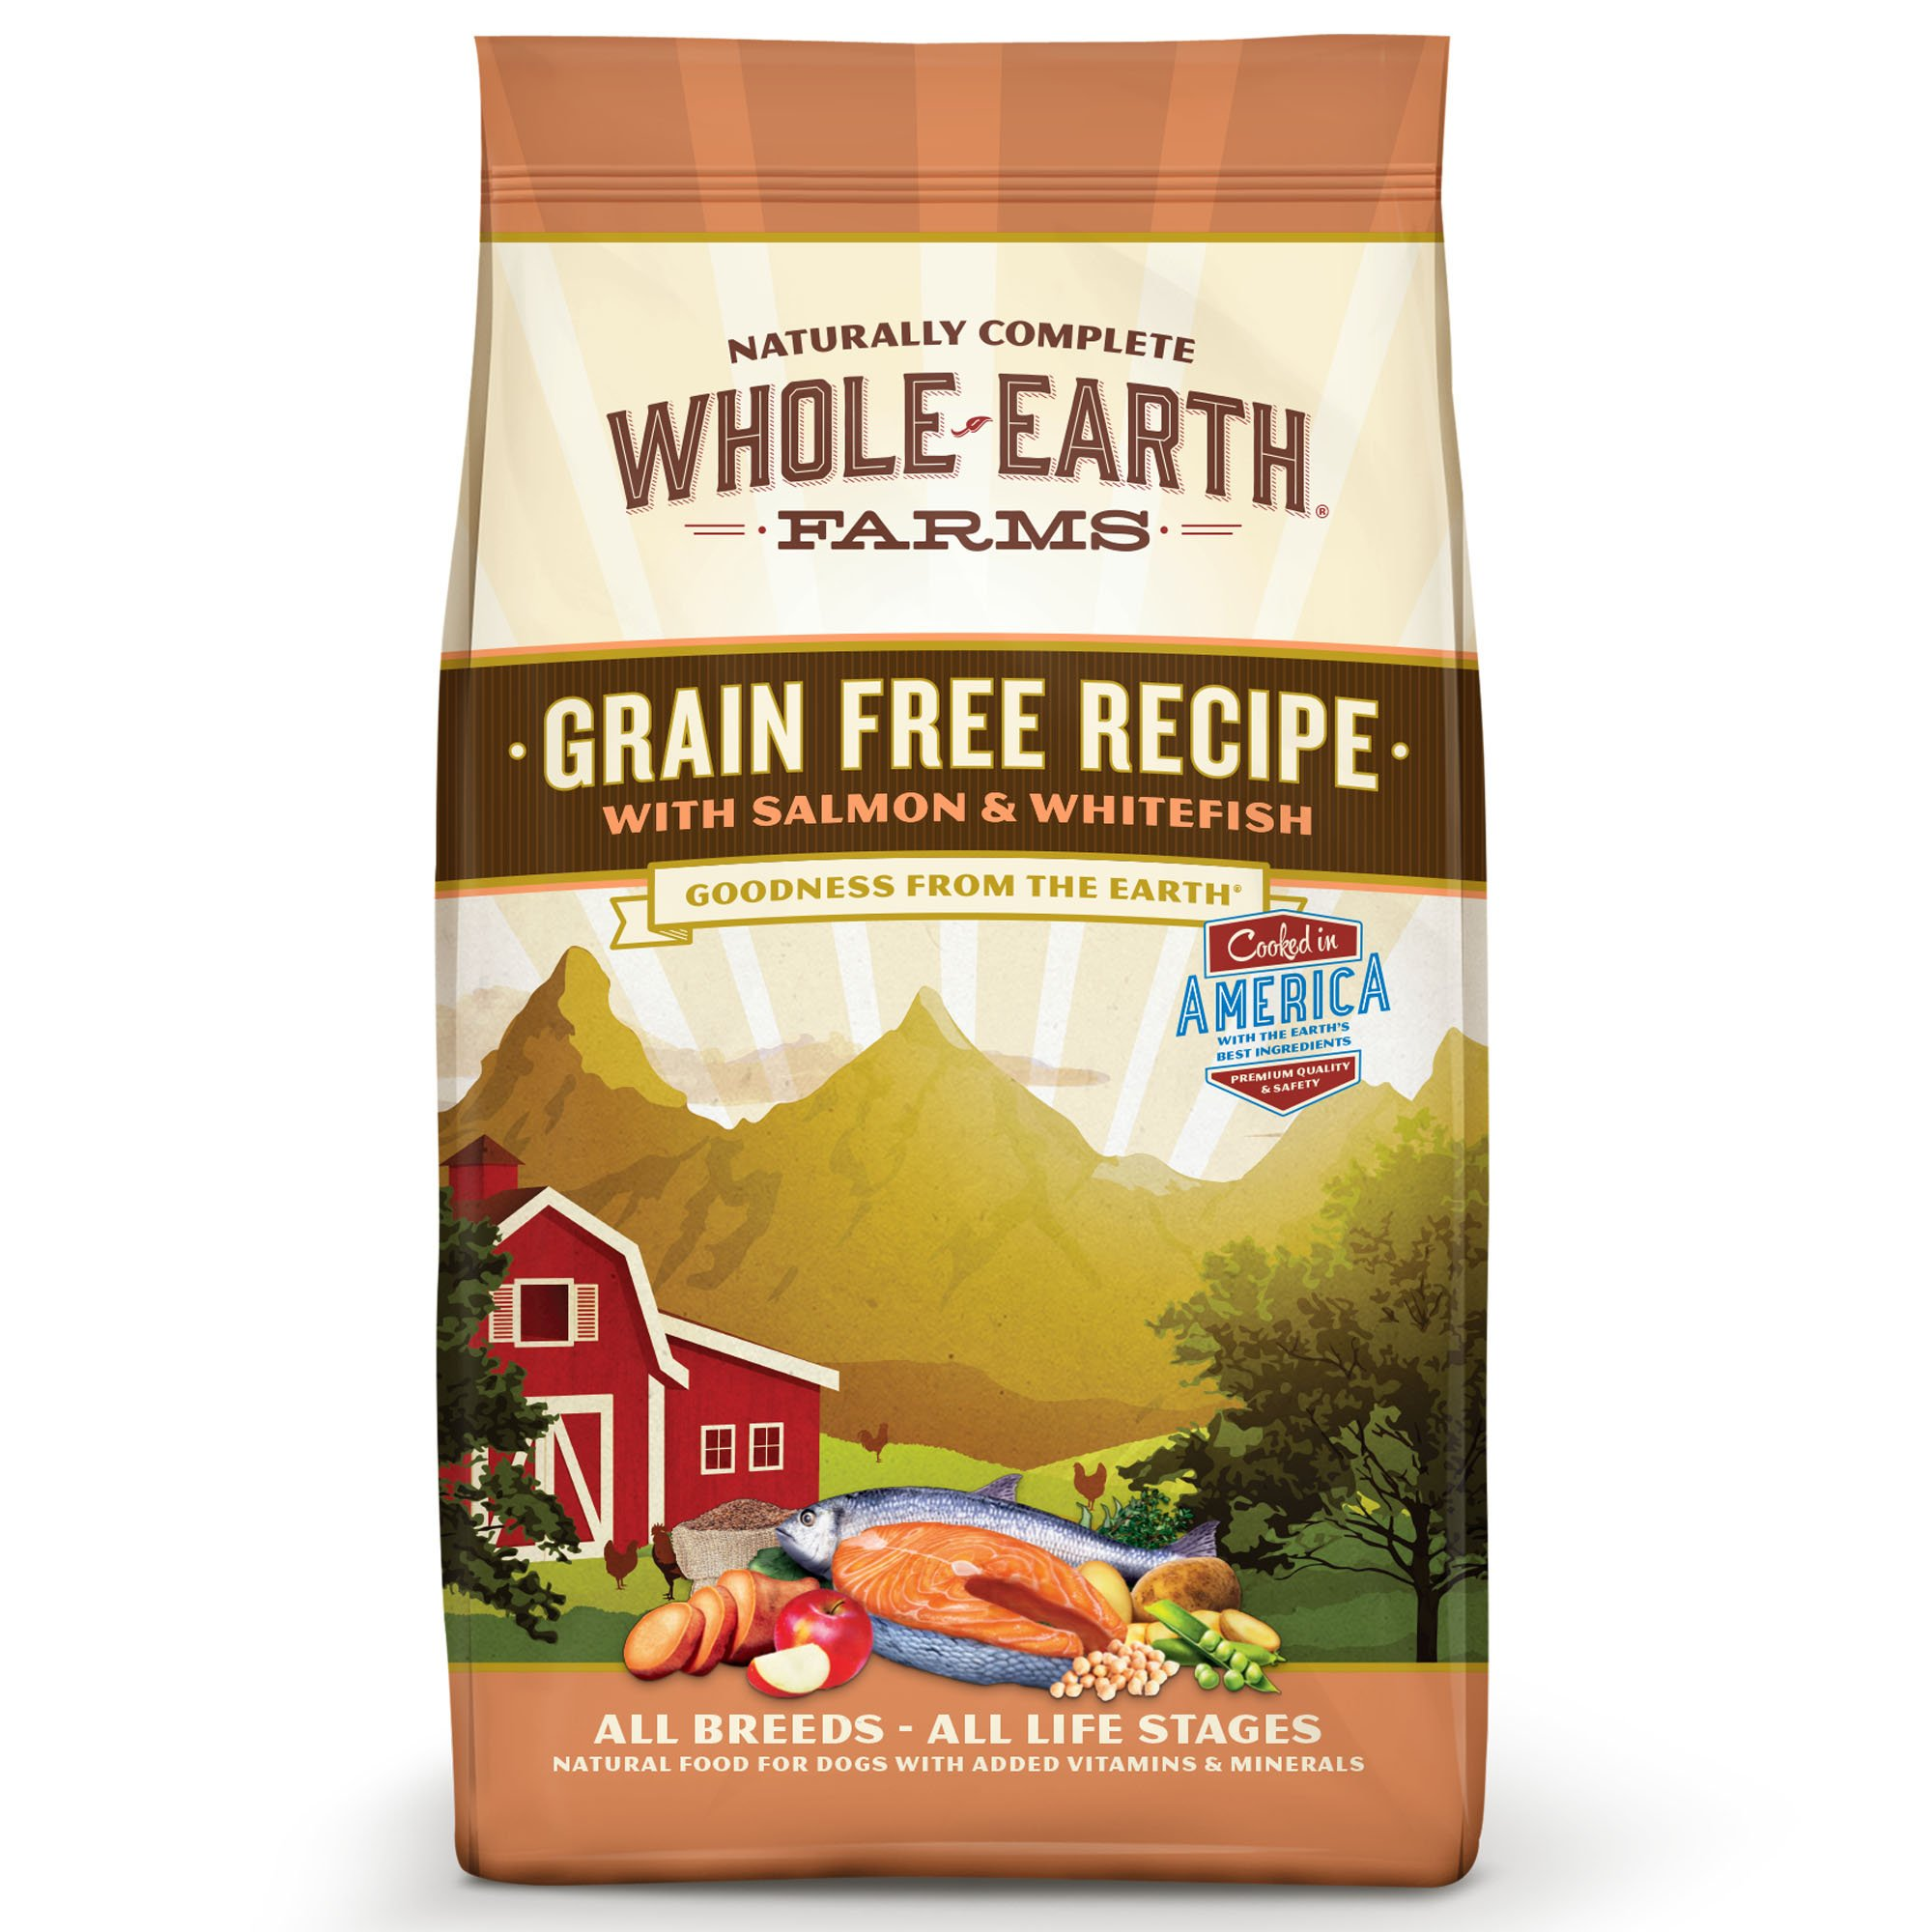 Whole Earth Farms Grain Free Dog Food